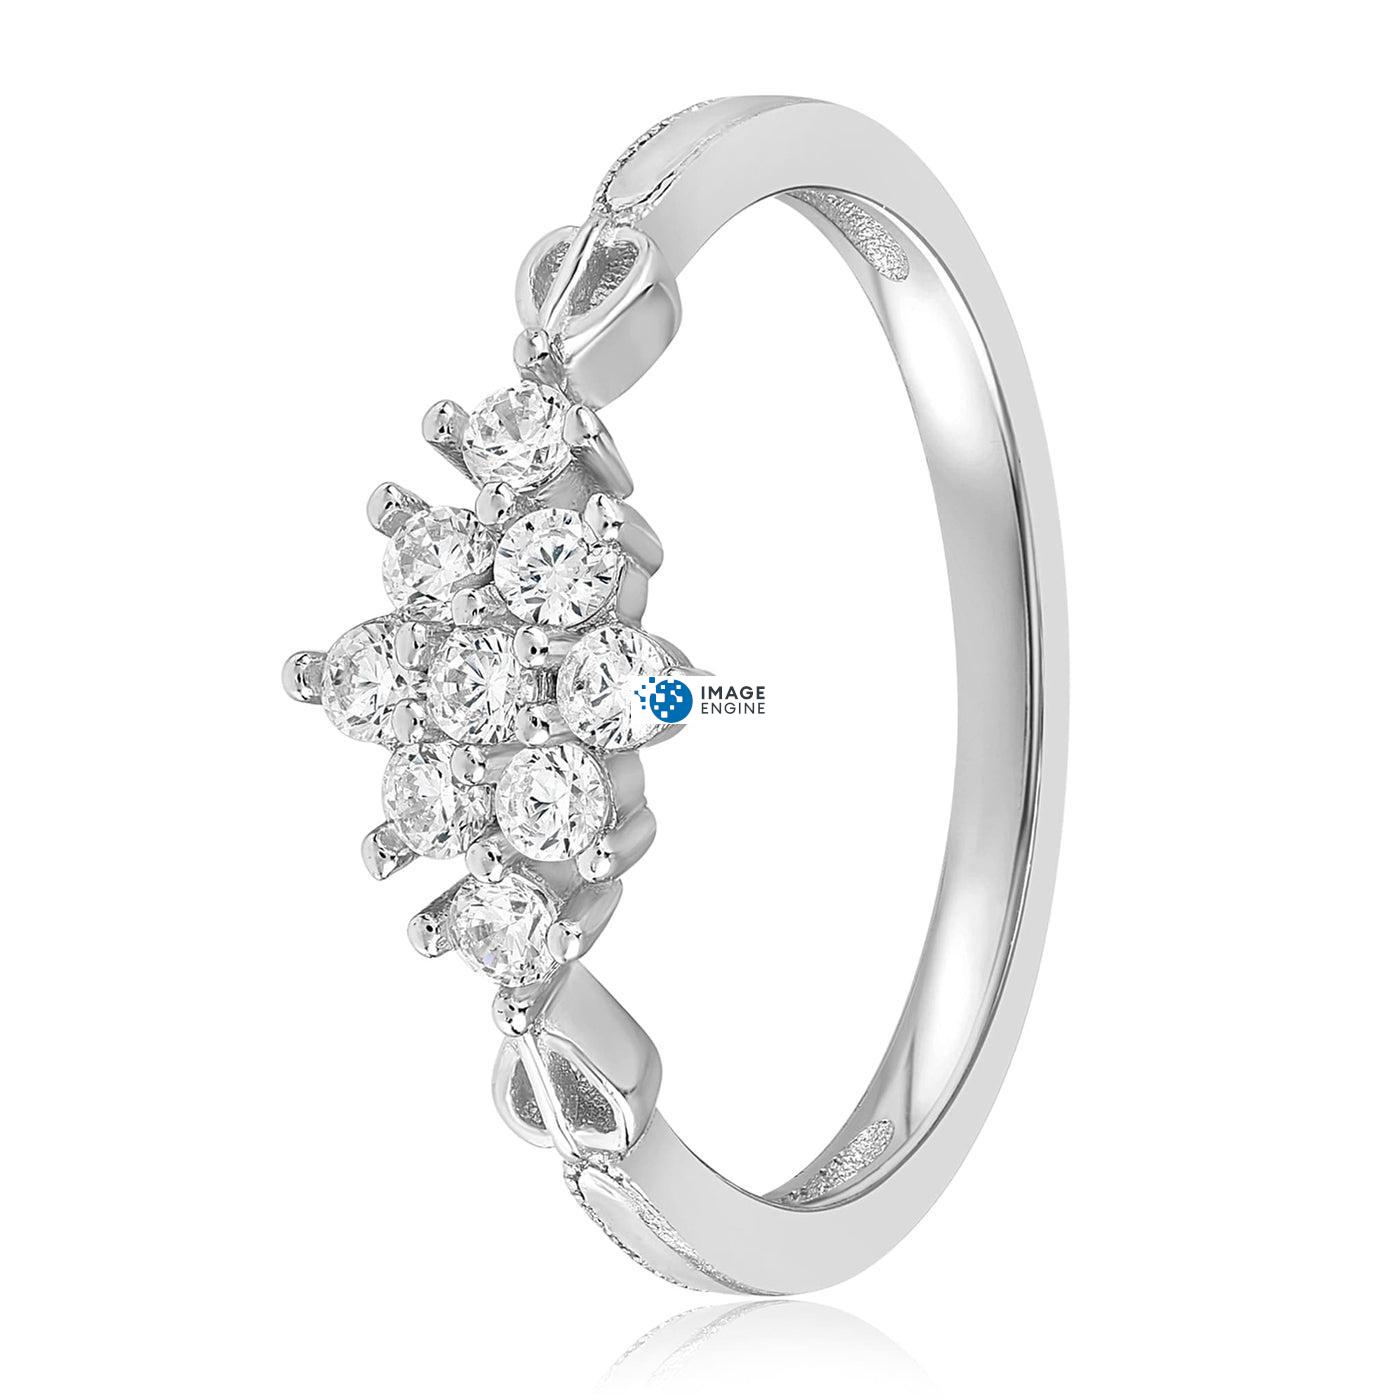 Sarah Snowflake Dainty Ring - Side View - 925 Sterling Silver